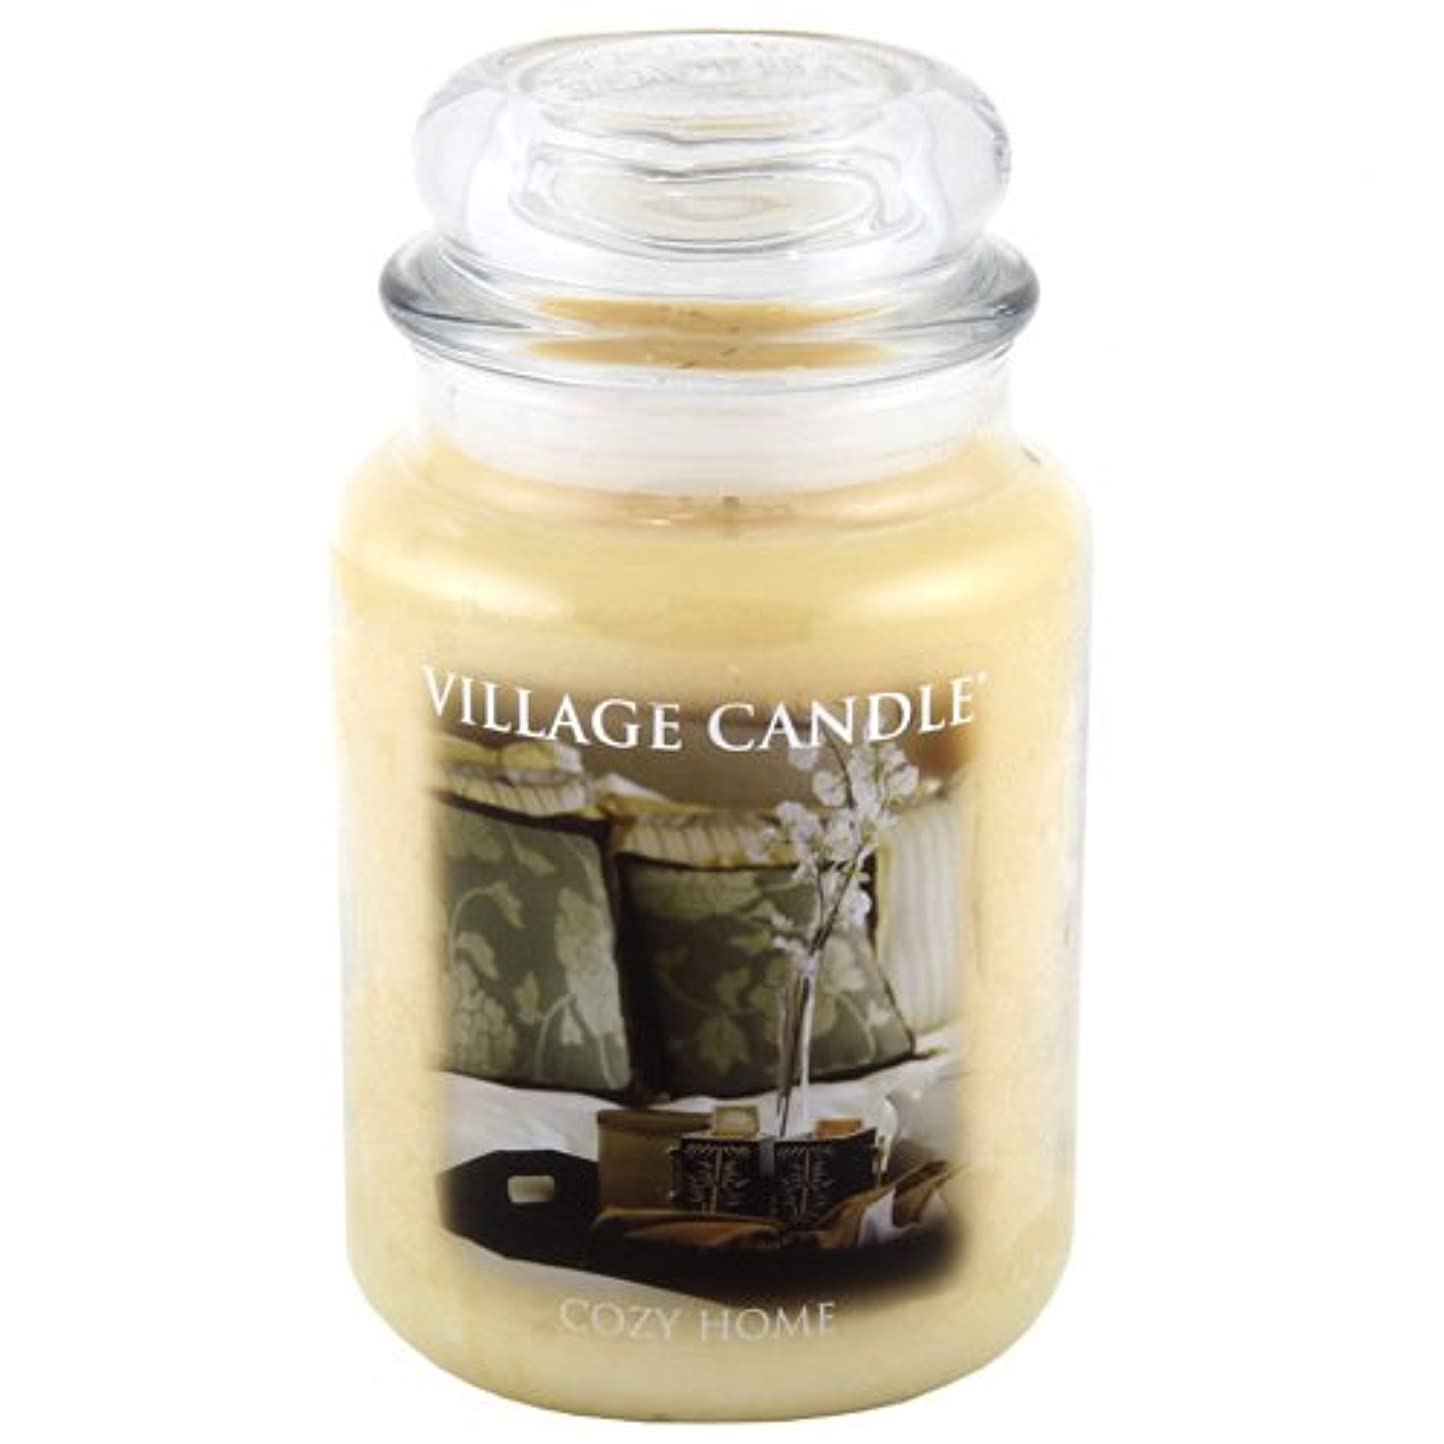 理由見分けるハンドブックVillage Candle Large Fragranced Candle Jar - 17cm x 10cm - 26oz (1219g)- Cozy Home - upto 170 hours burn time...